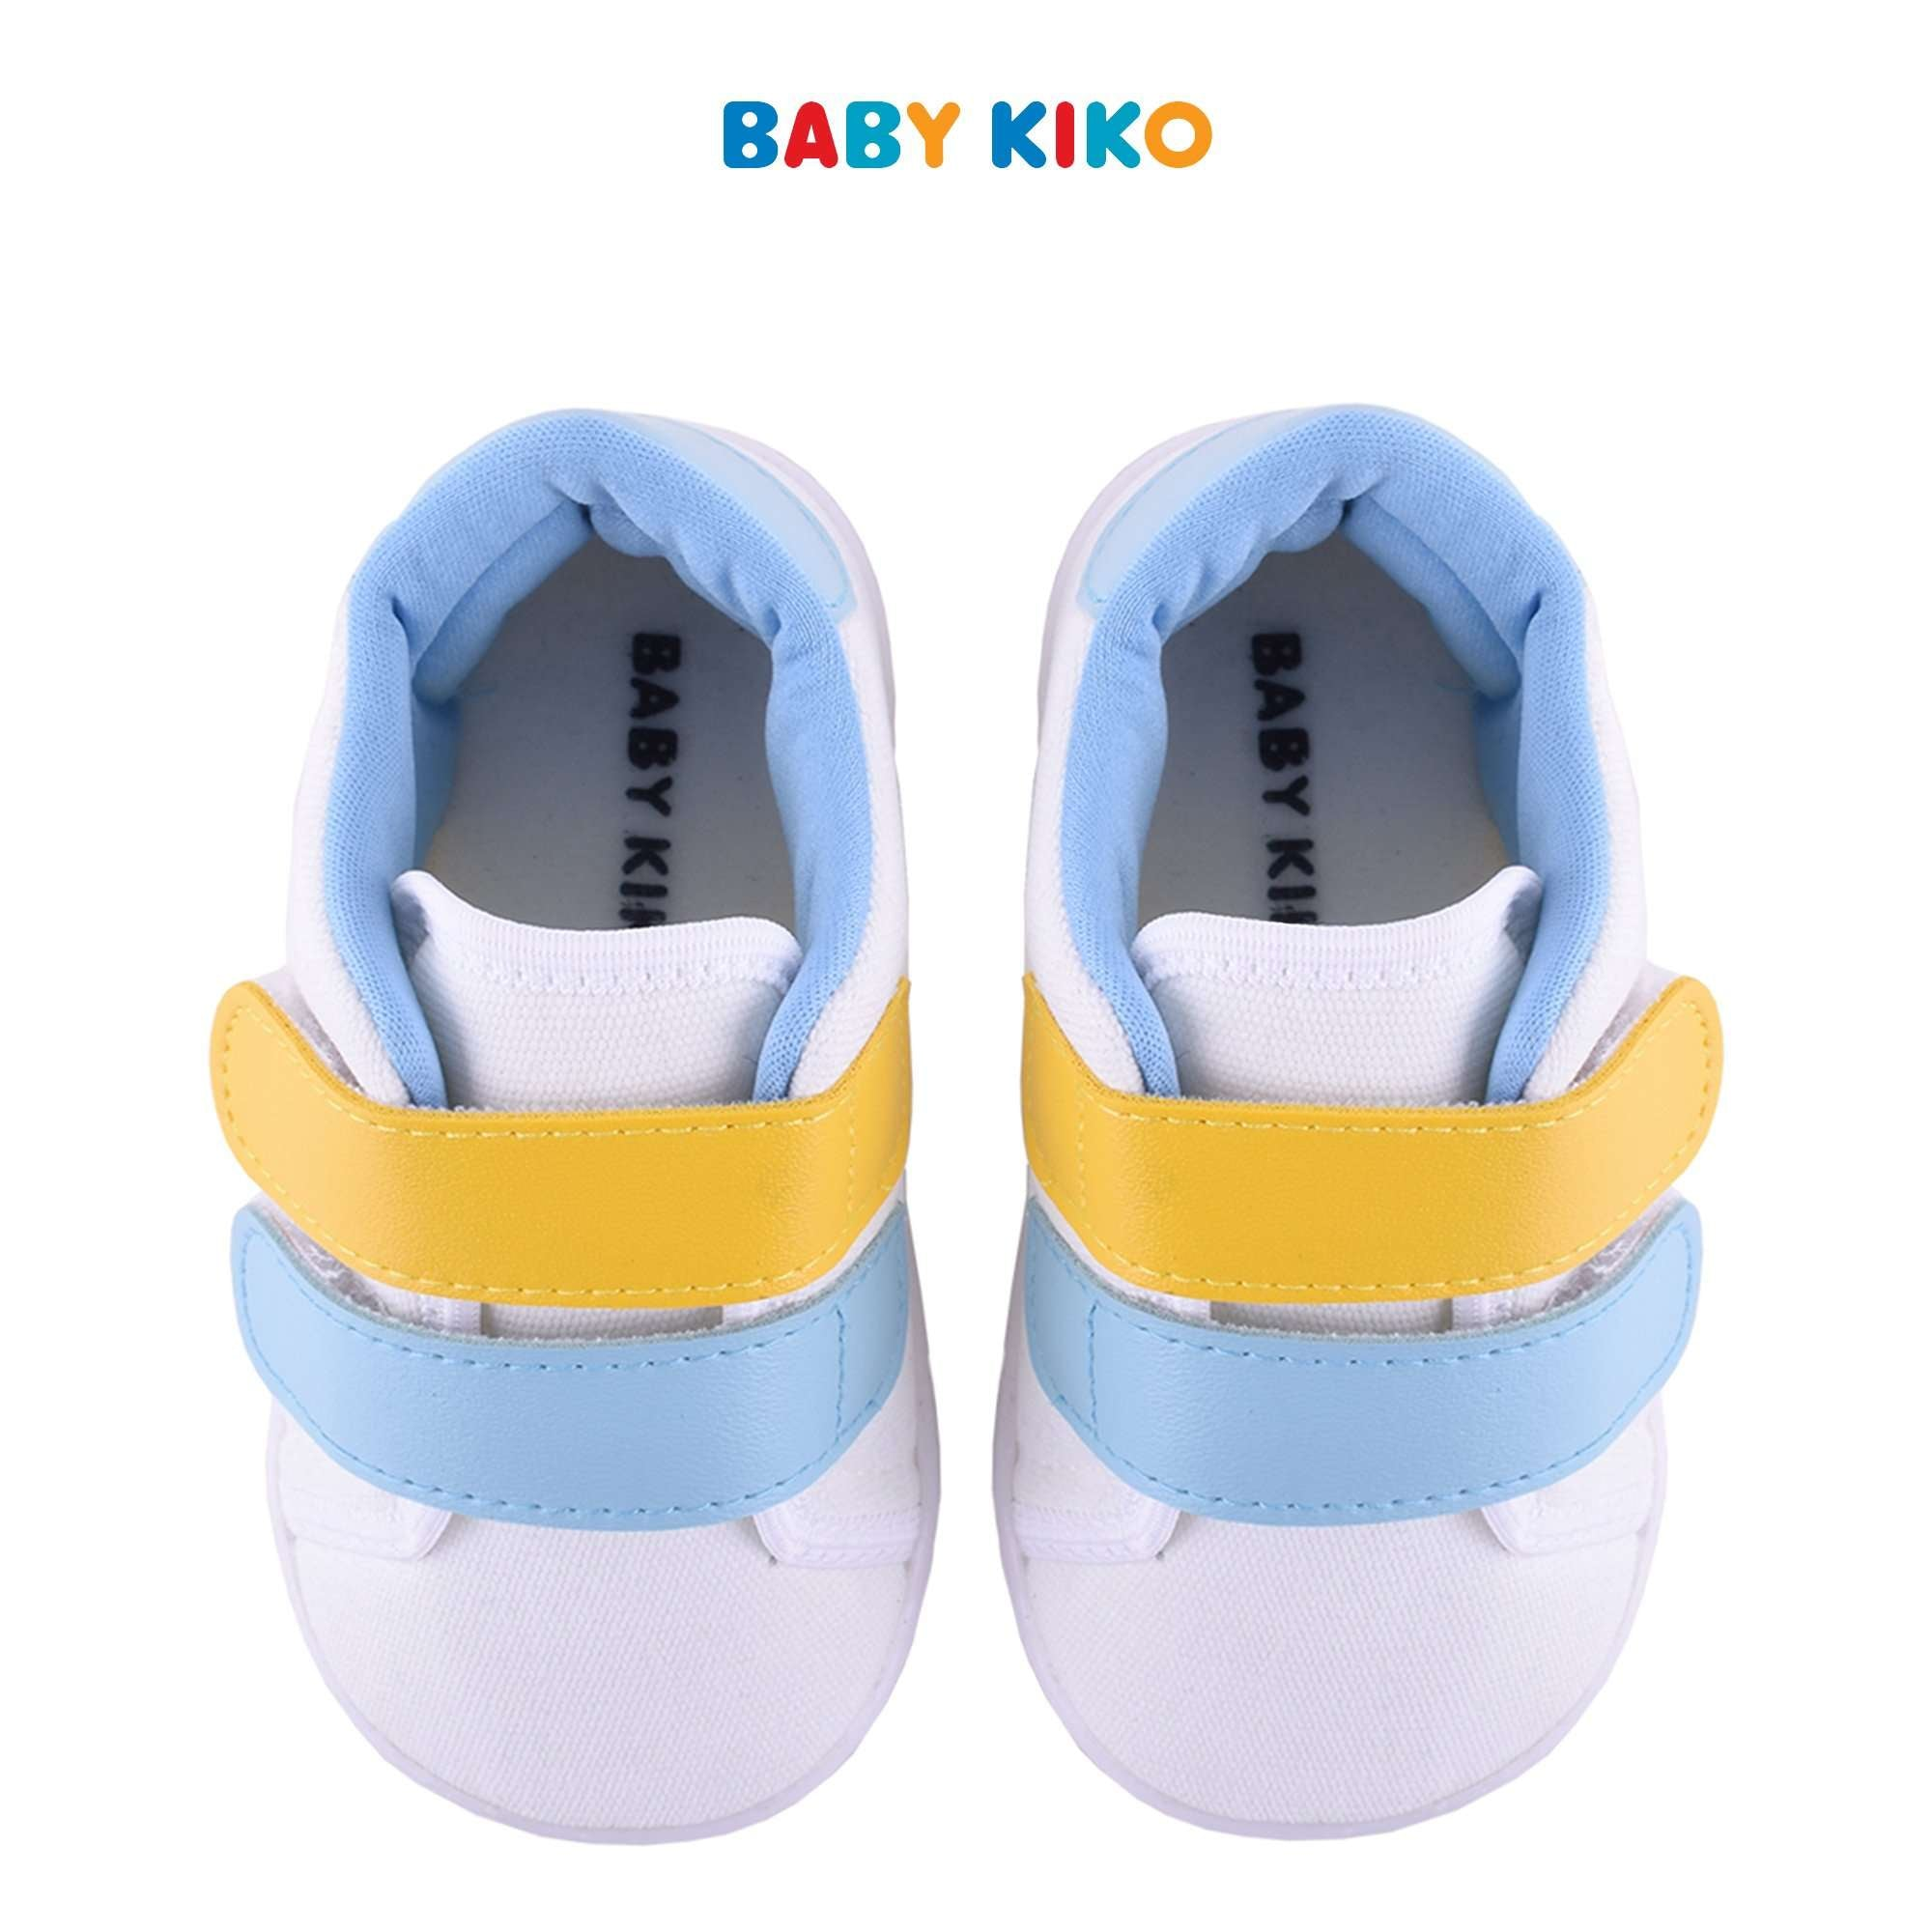 Baby KIKO Toddler Girl Textile Shoes - White B925106-5002-WO : Buy Baby KIKO online at CMG.MY